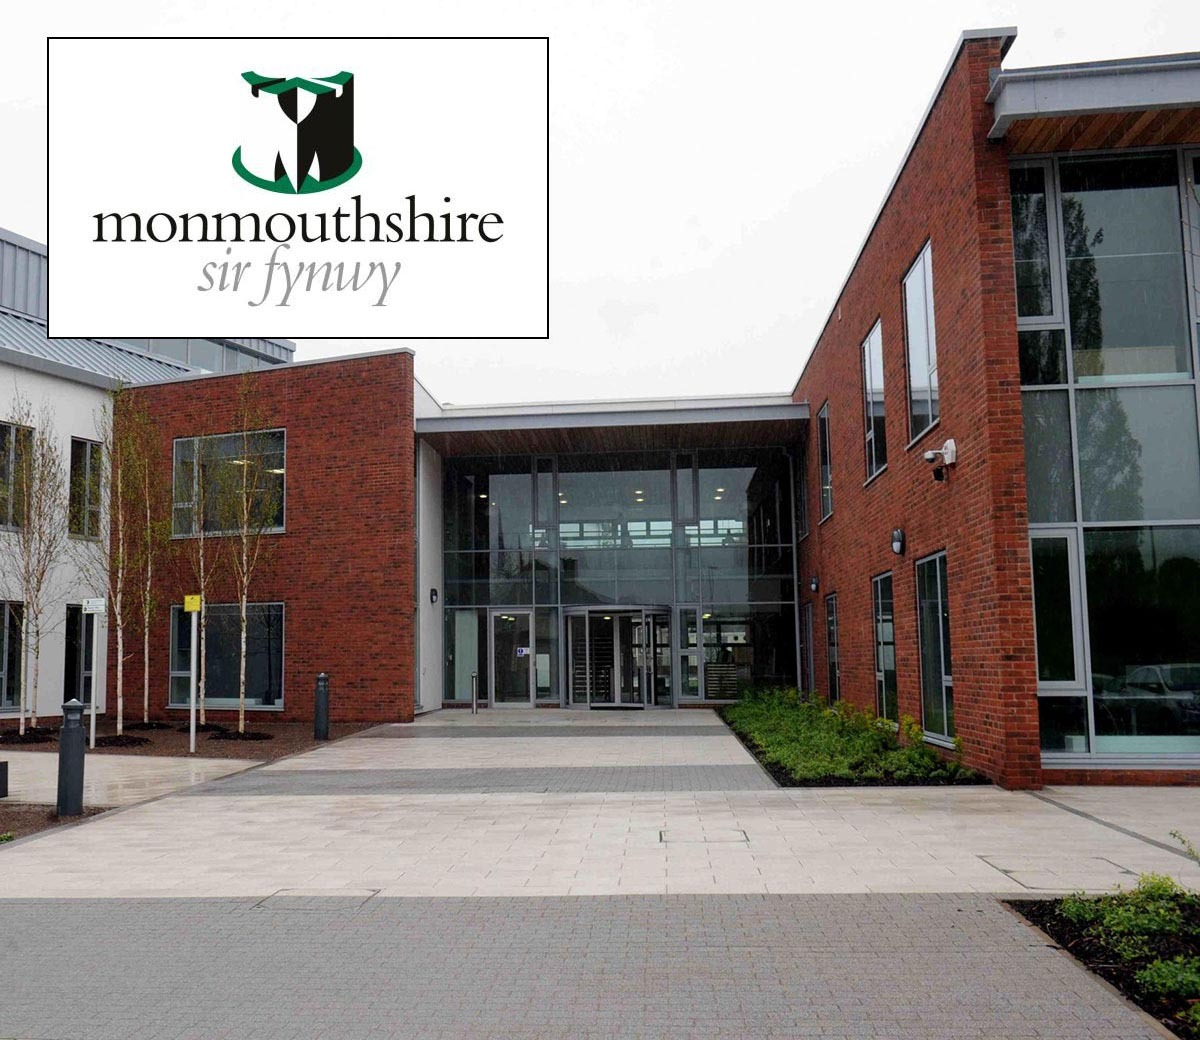 Monmouthshire council